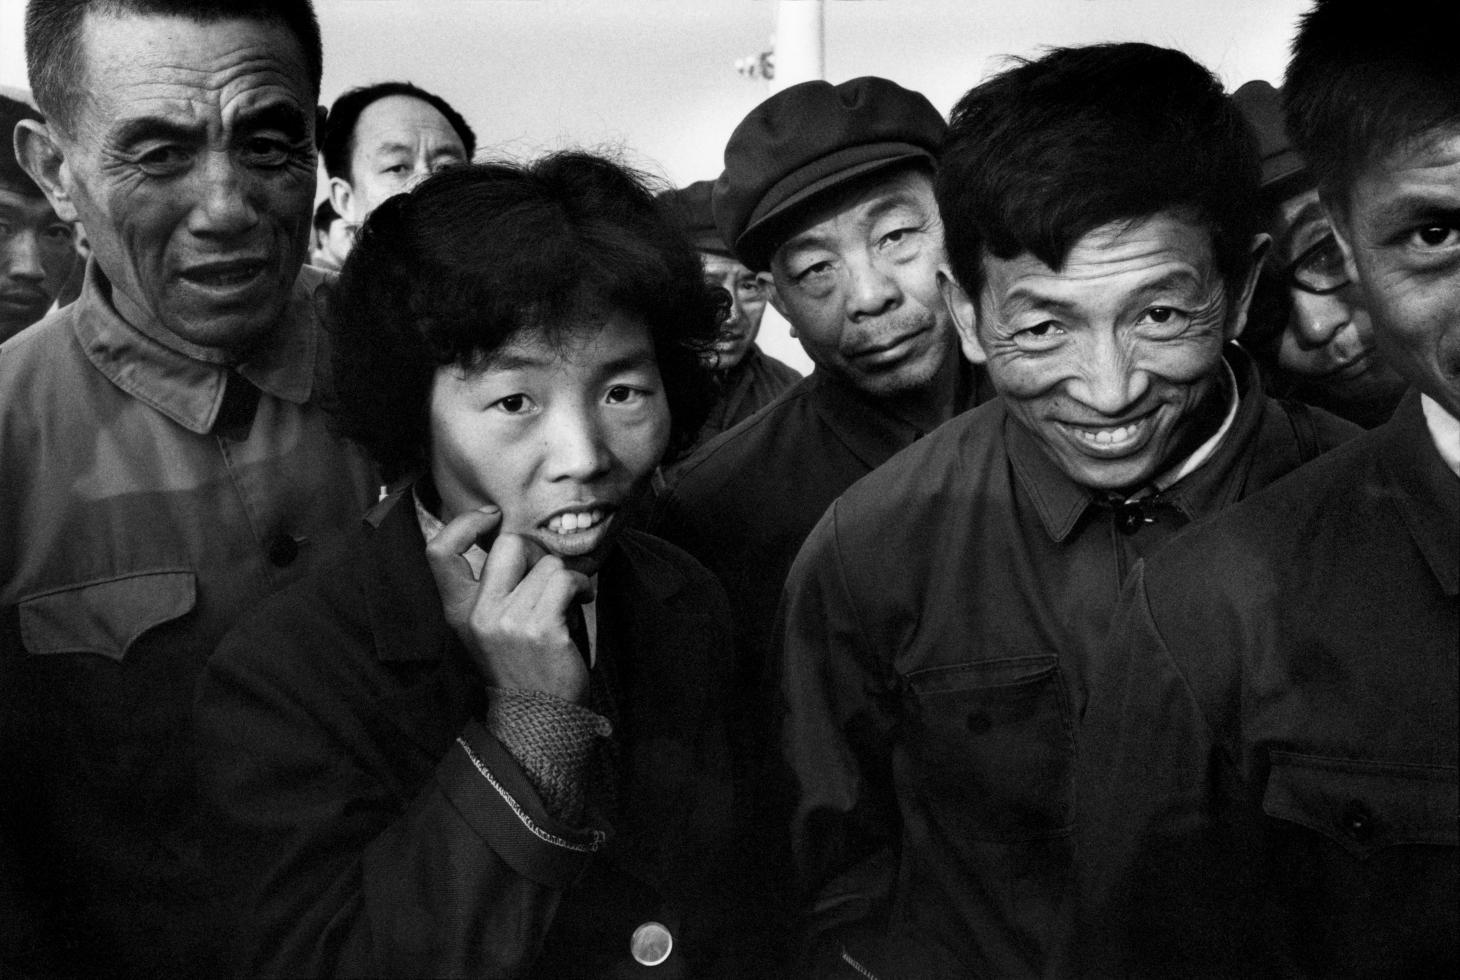 A panoramic portrait of 20th century China as seen by Magnum photographers